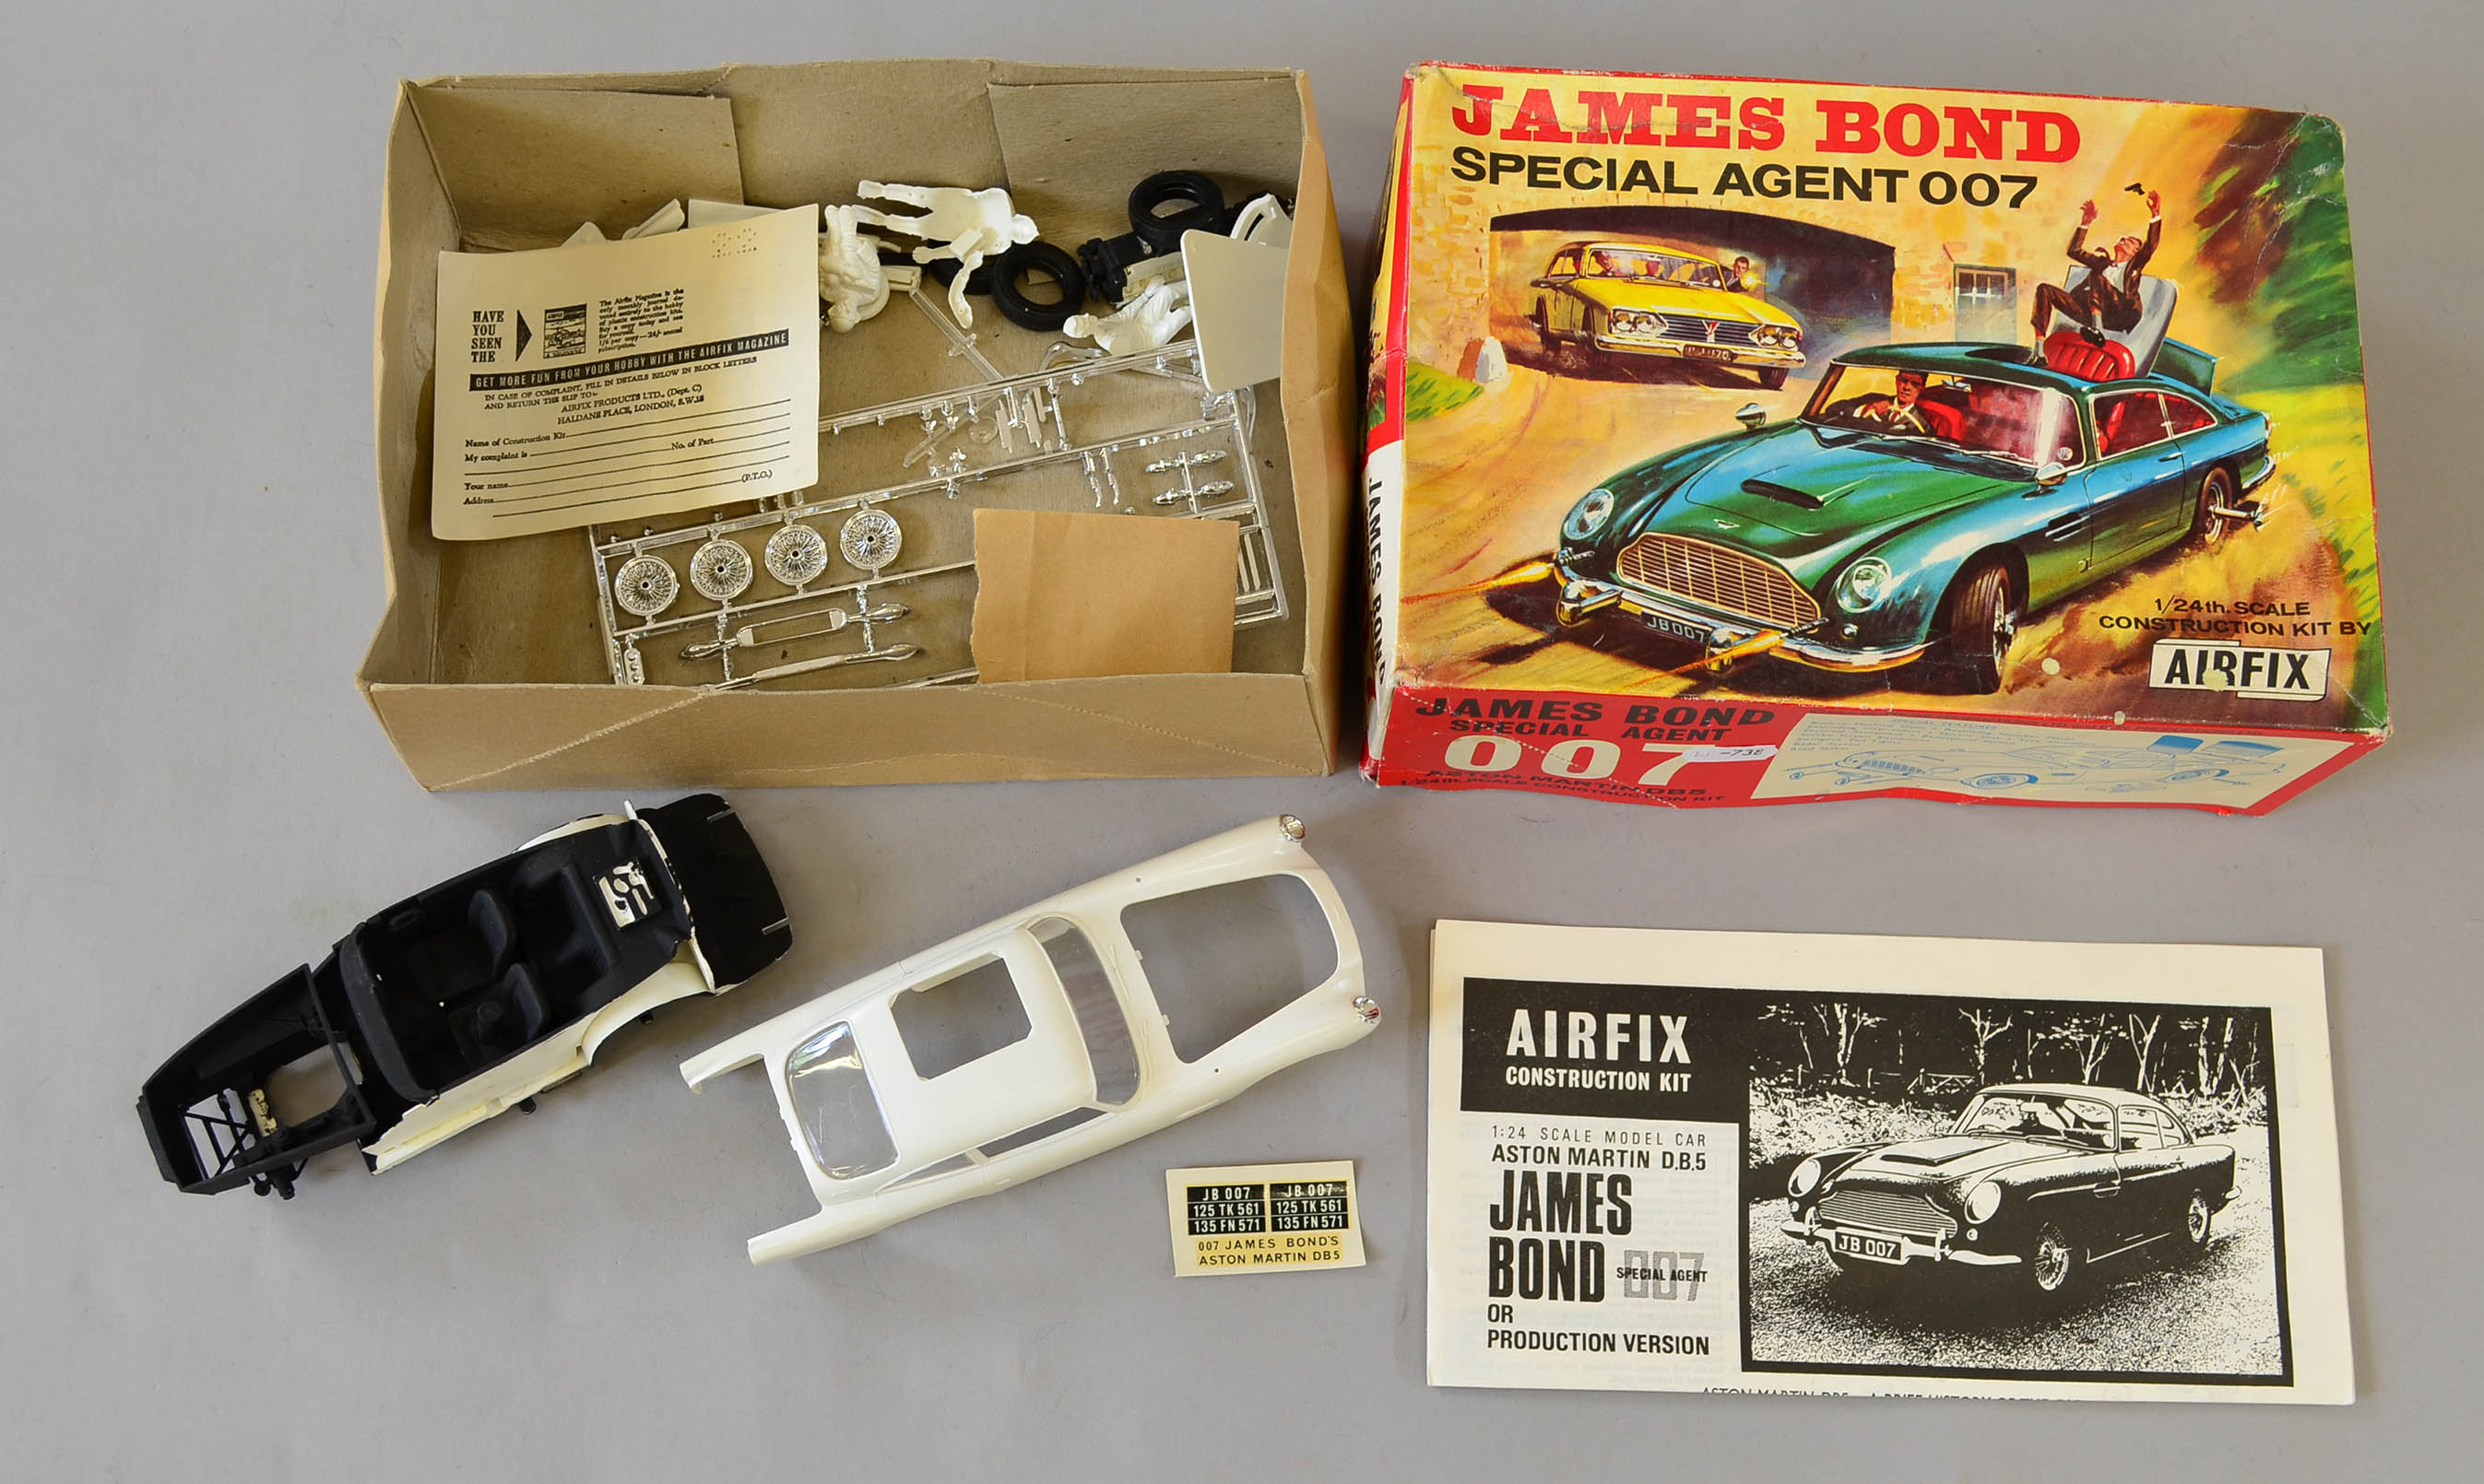 airfix james bond special agent 007 aston martin db5 model kit